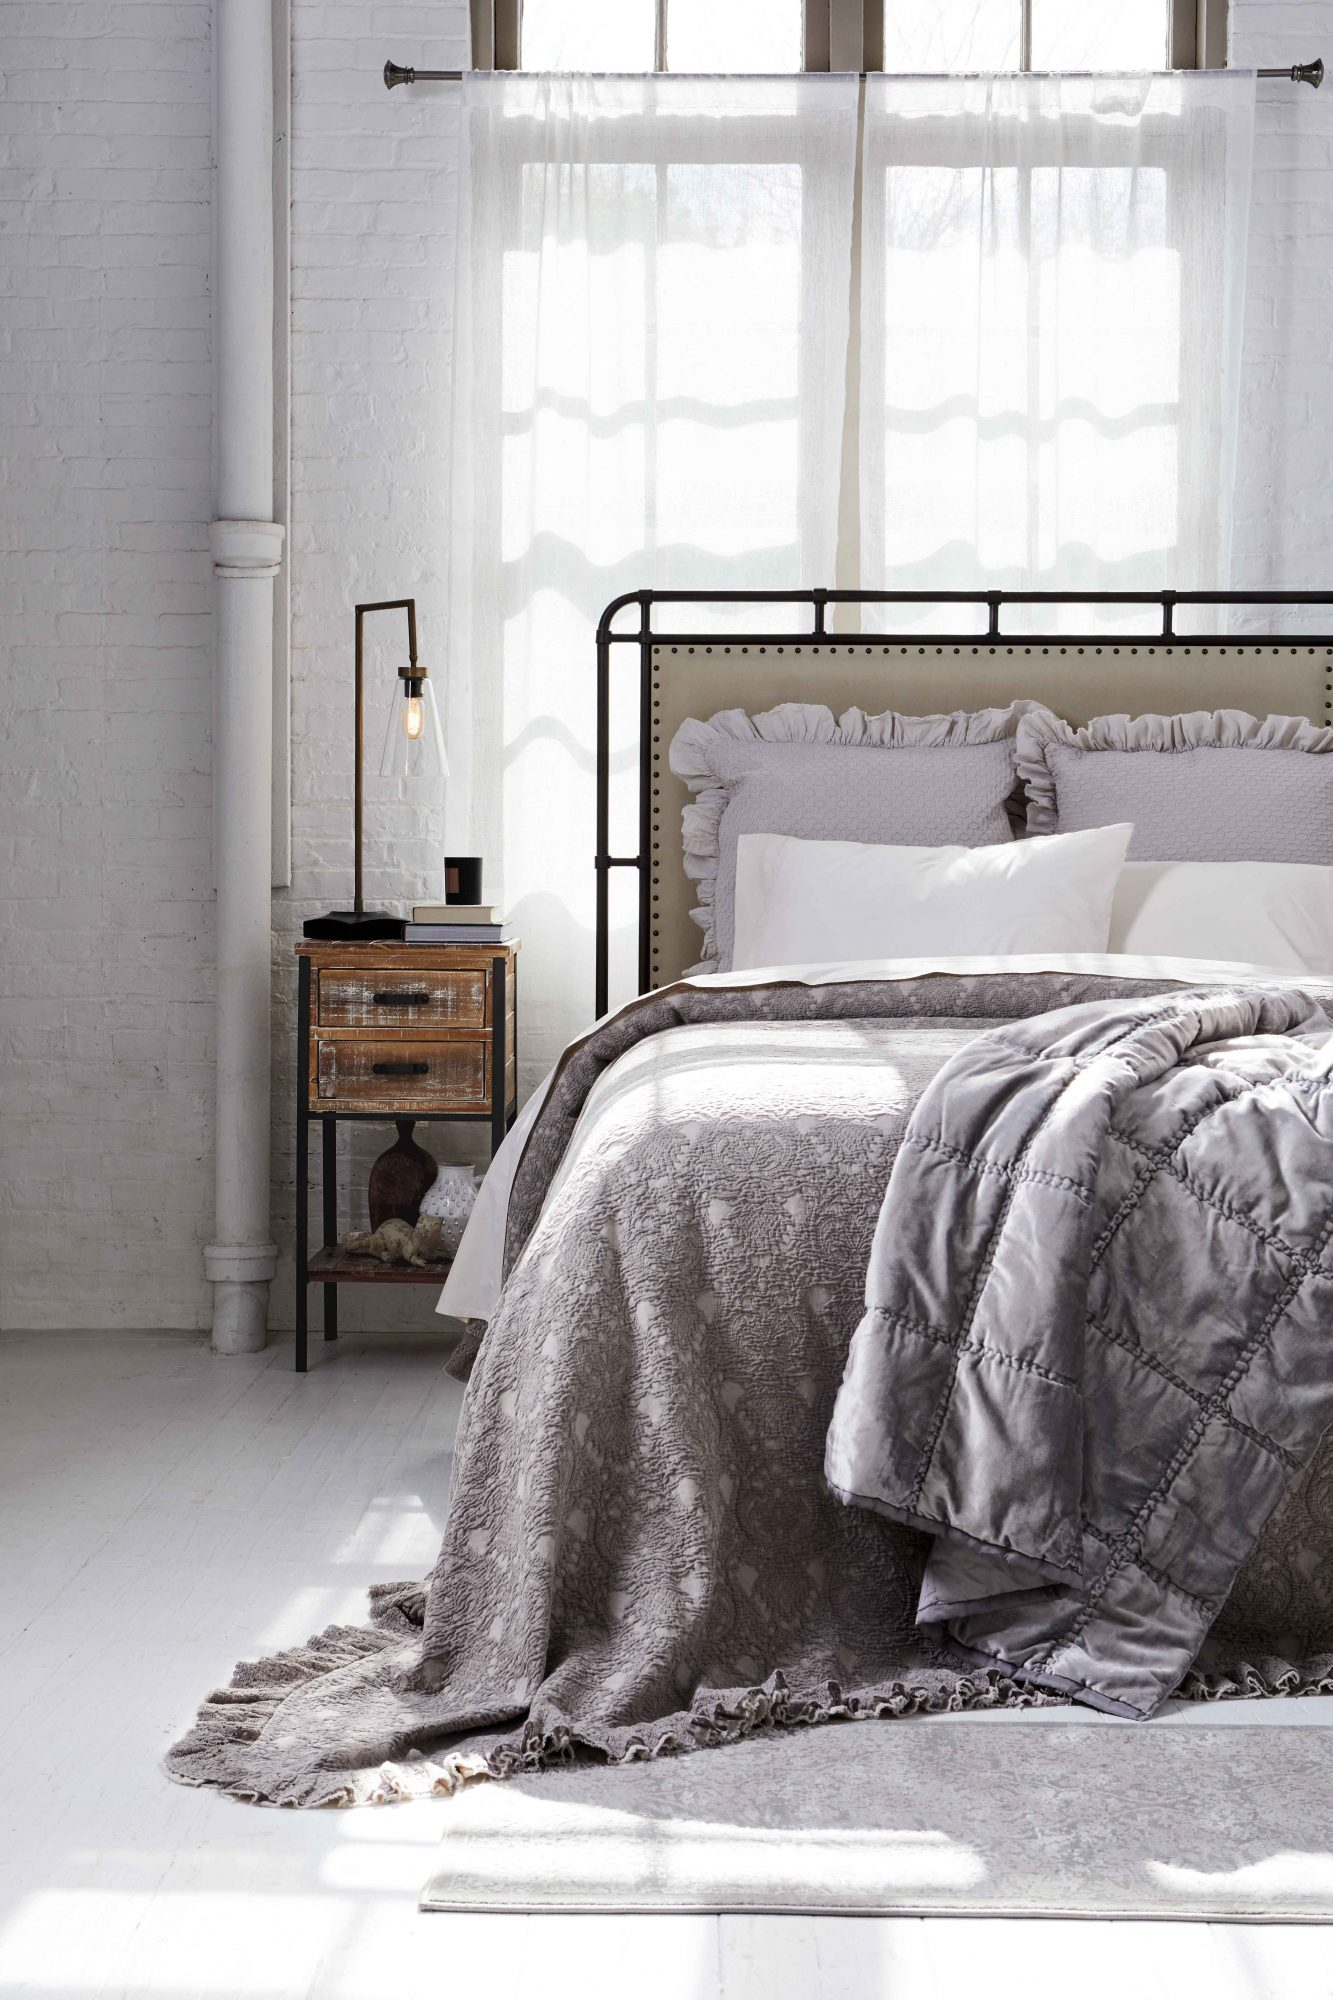 Homesense C1_38335_BEDROOM_1137